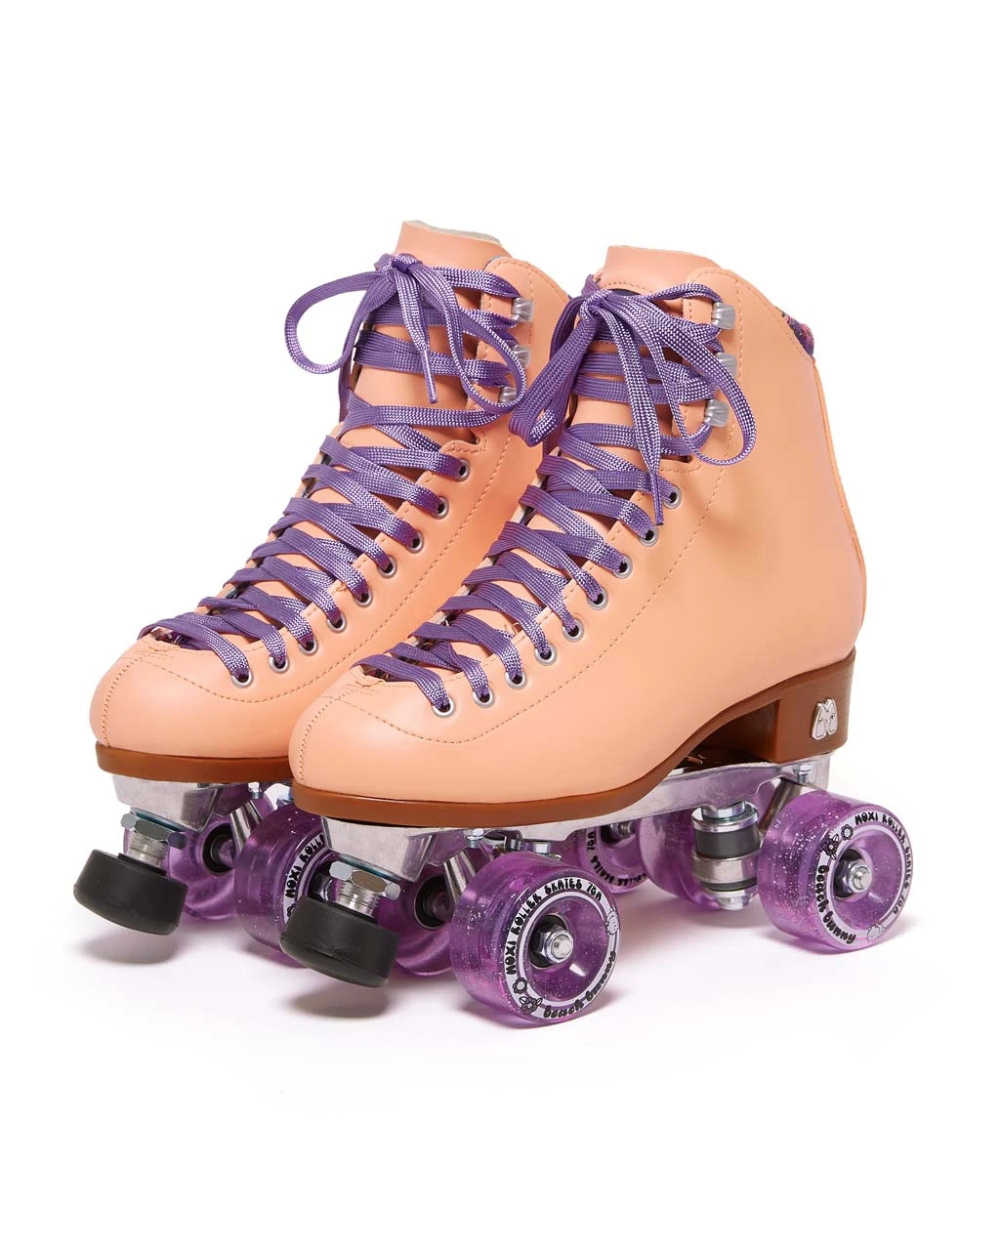 Beach Bunny Roller Skates Peach In 2020 Roller Skate Shoes Roller Skating Outfits Beach Bunny